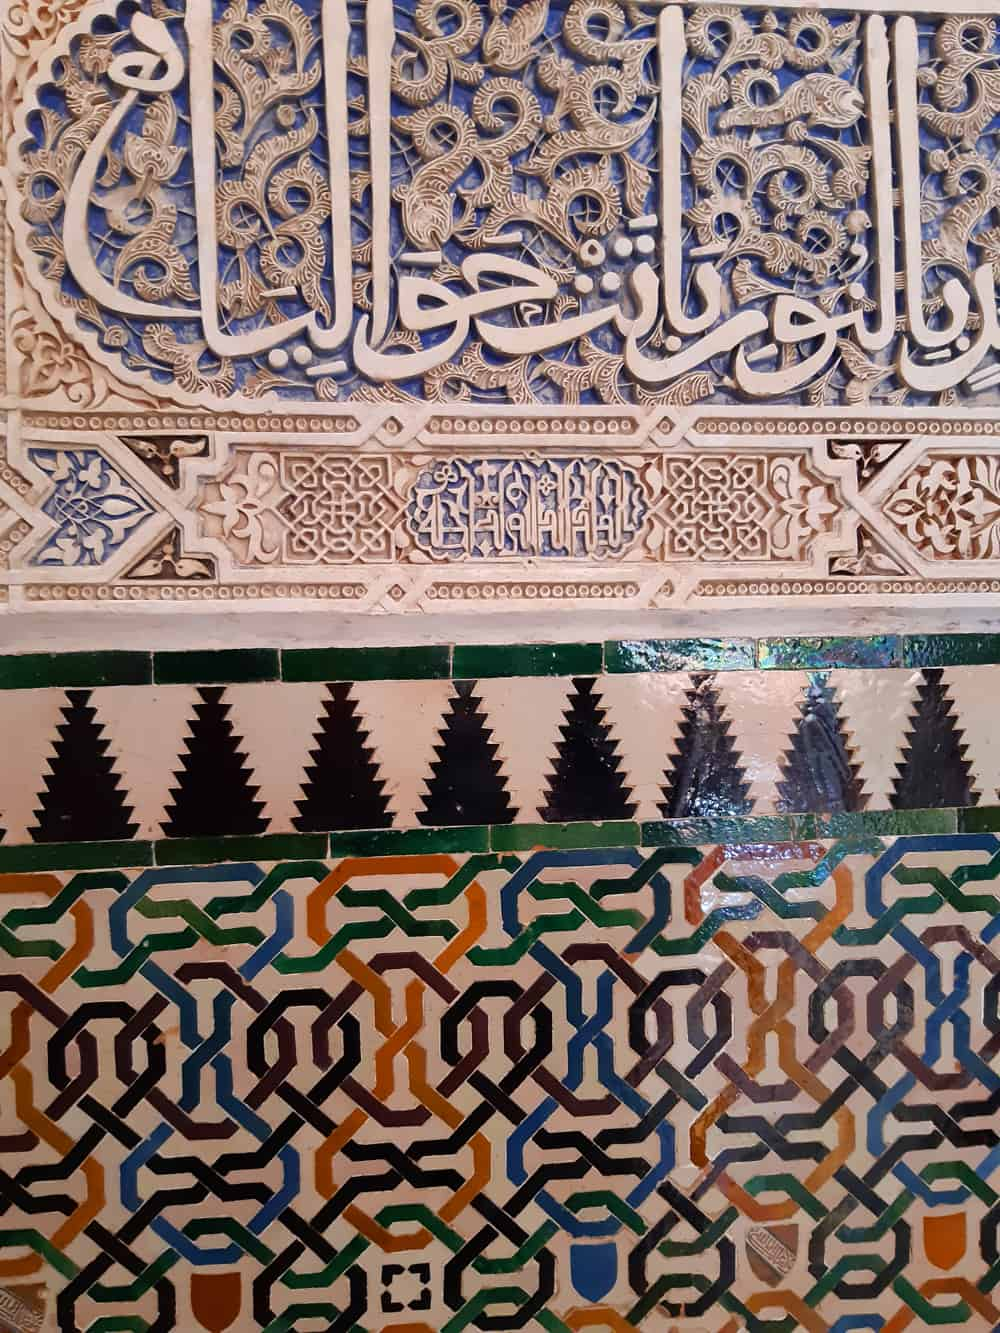 Tiles at the Alhambra